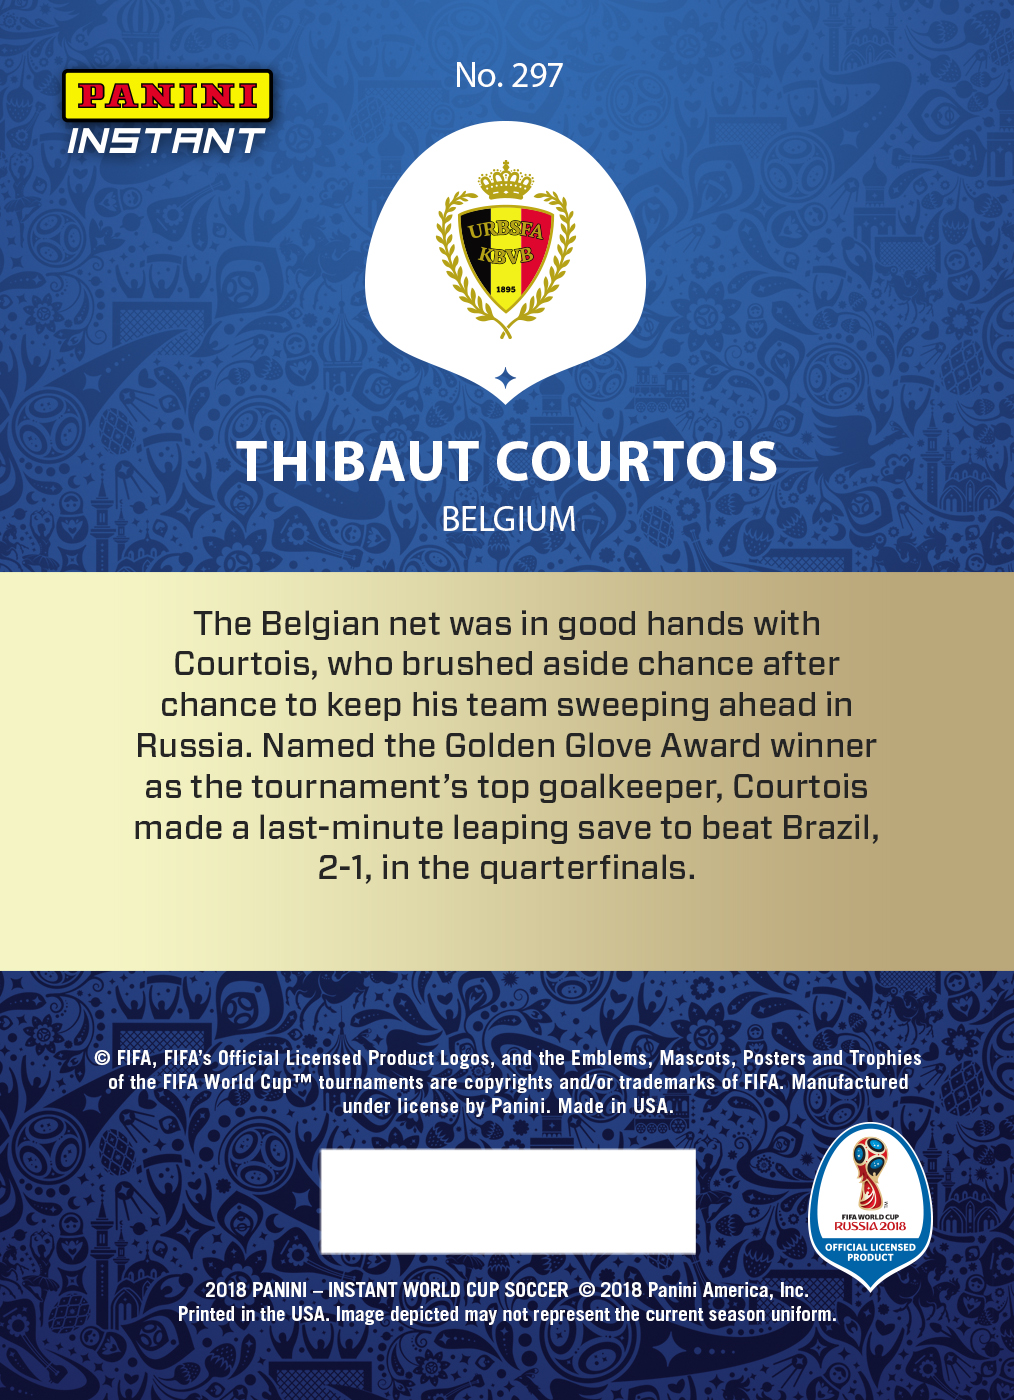 Thibaut Courtois - 2018 Instant Soccer World Cup #297